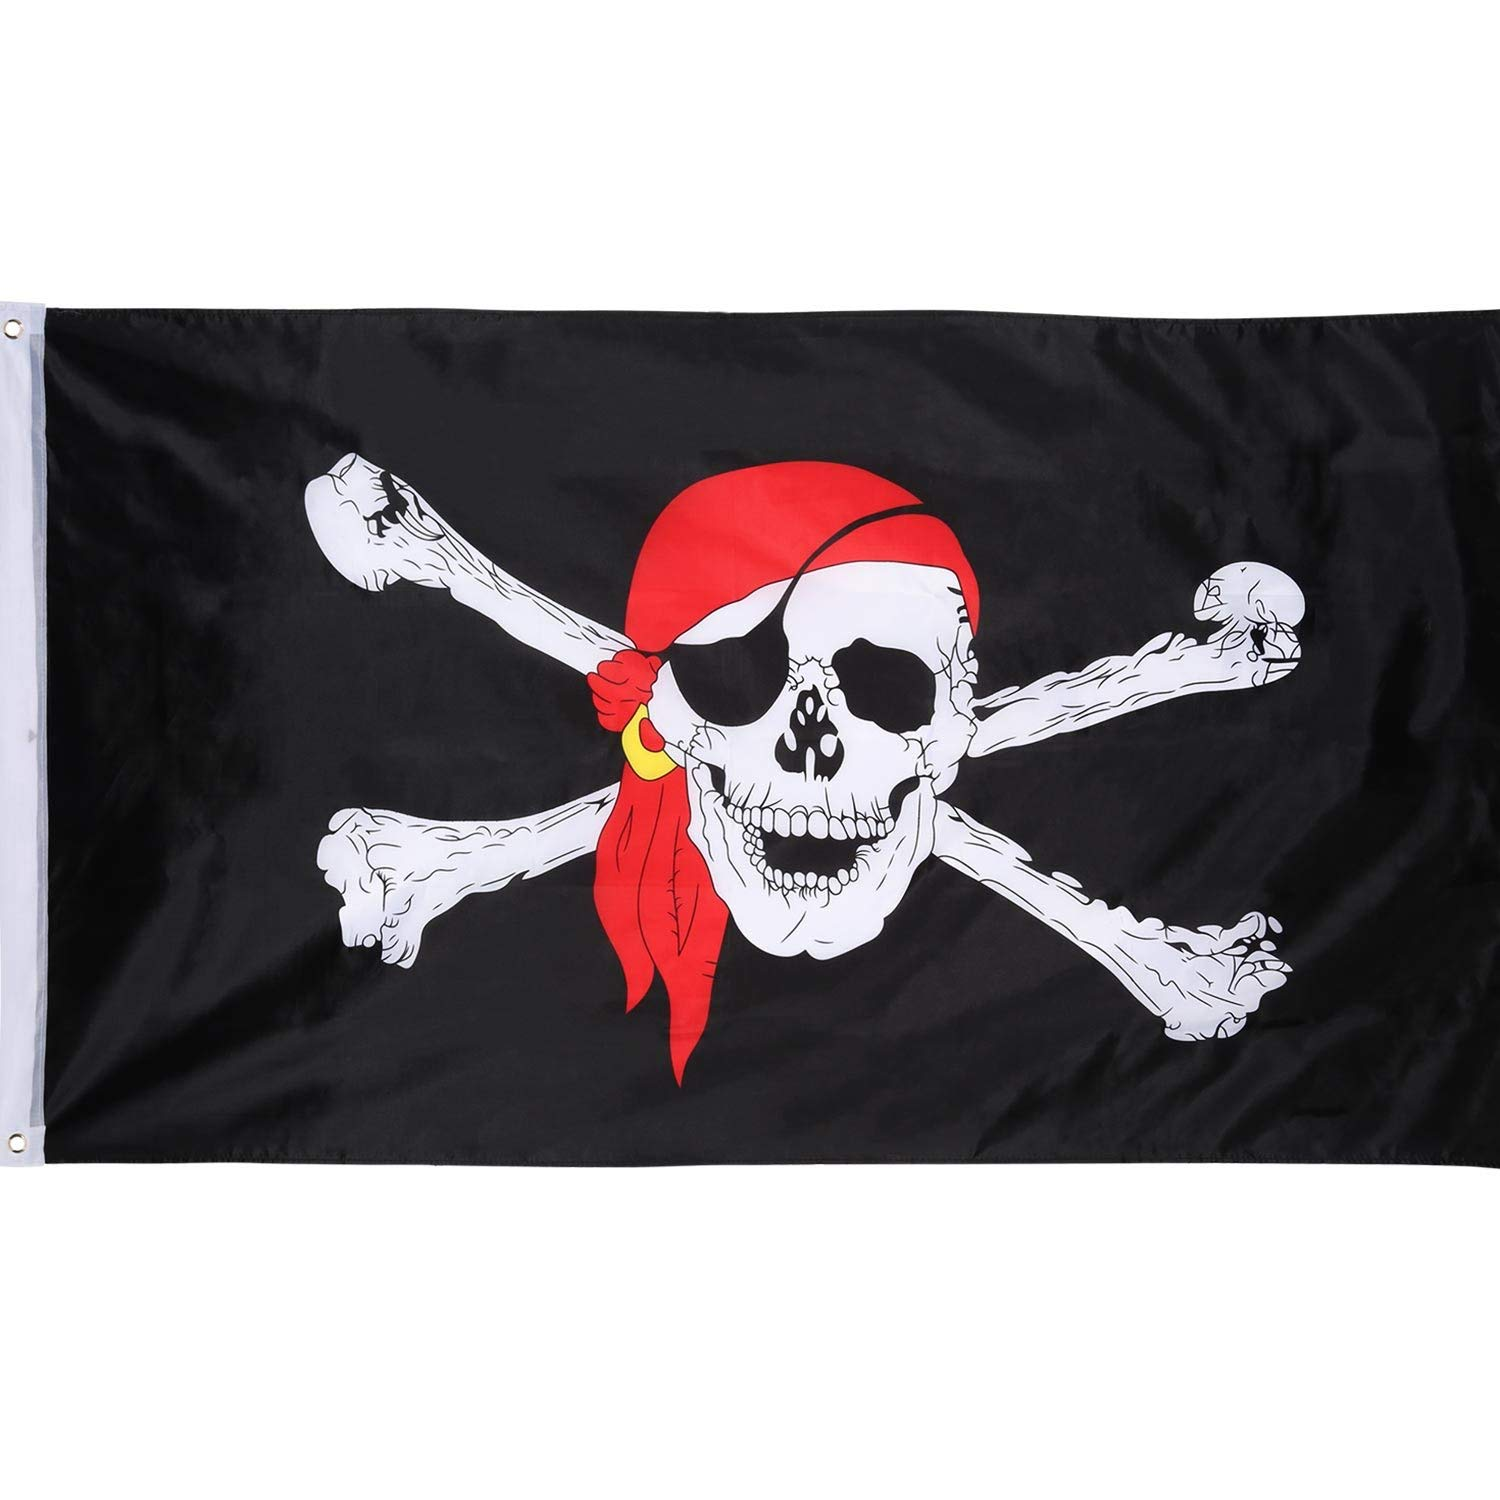 Hestya Jolly Roger Pirate Flag Polyester Red Scarf Skull Pirate Flag for Pirate Party, Pirate Day, Halloween Pirate Themed Decoration, 1 Pack, 3 by 5 Feet